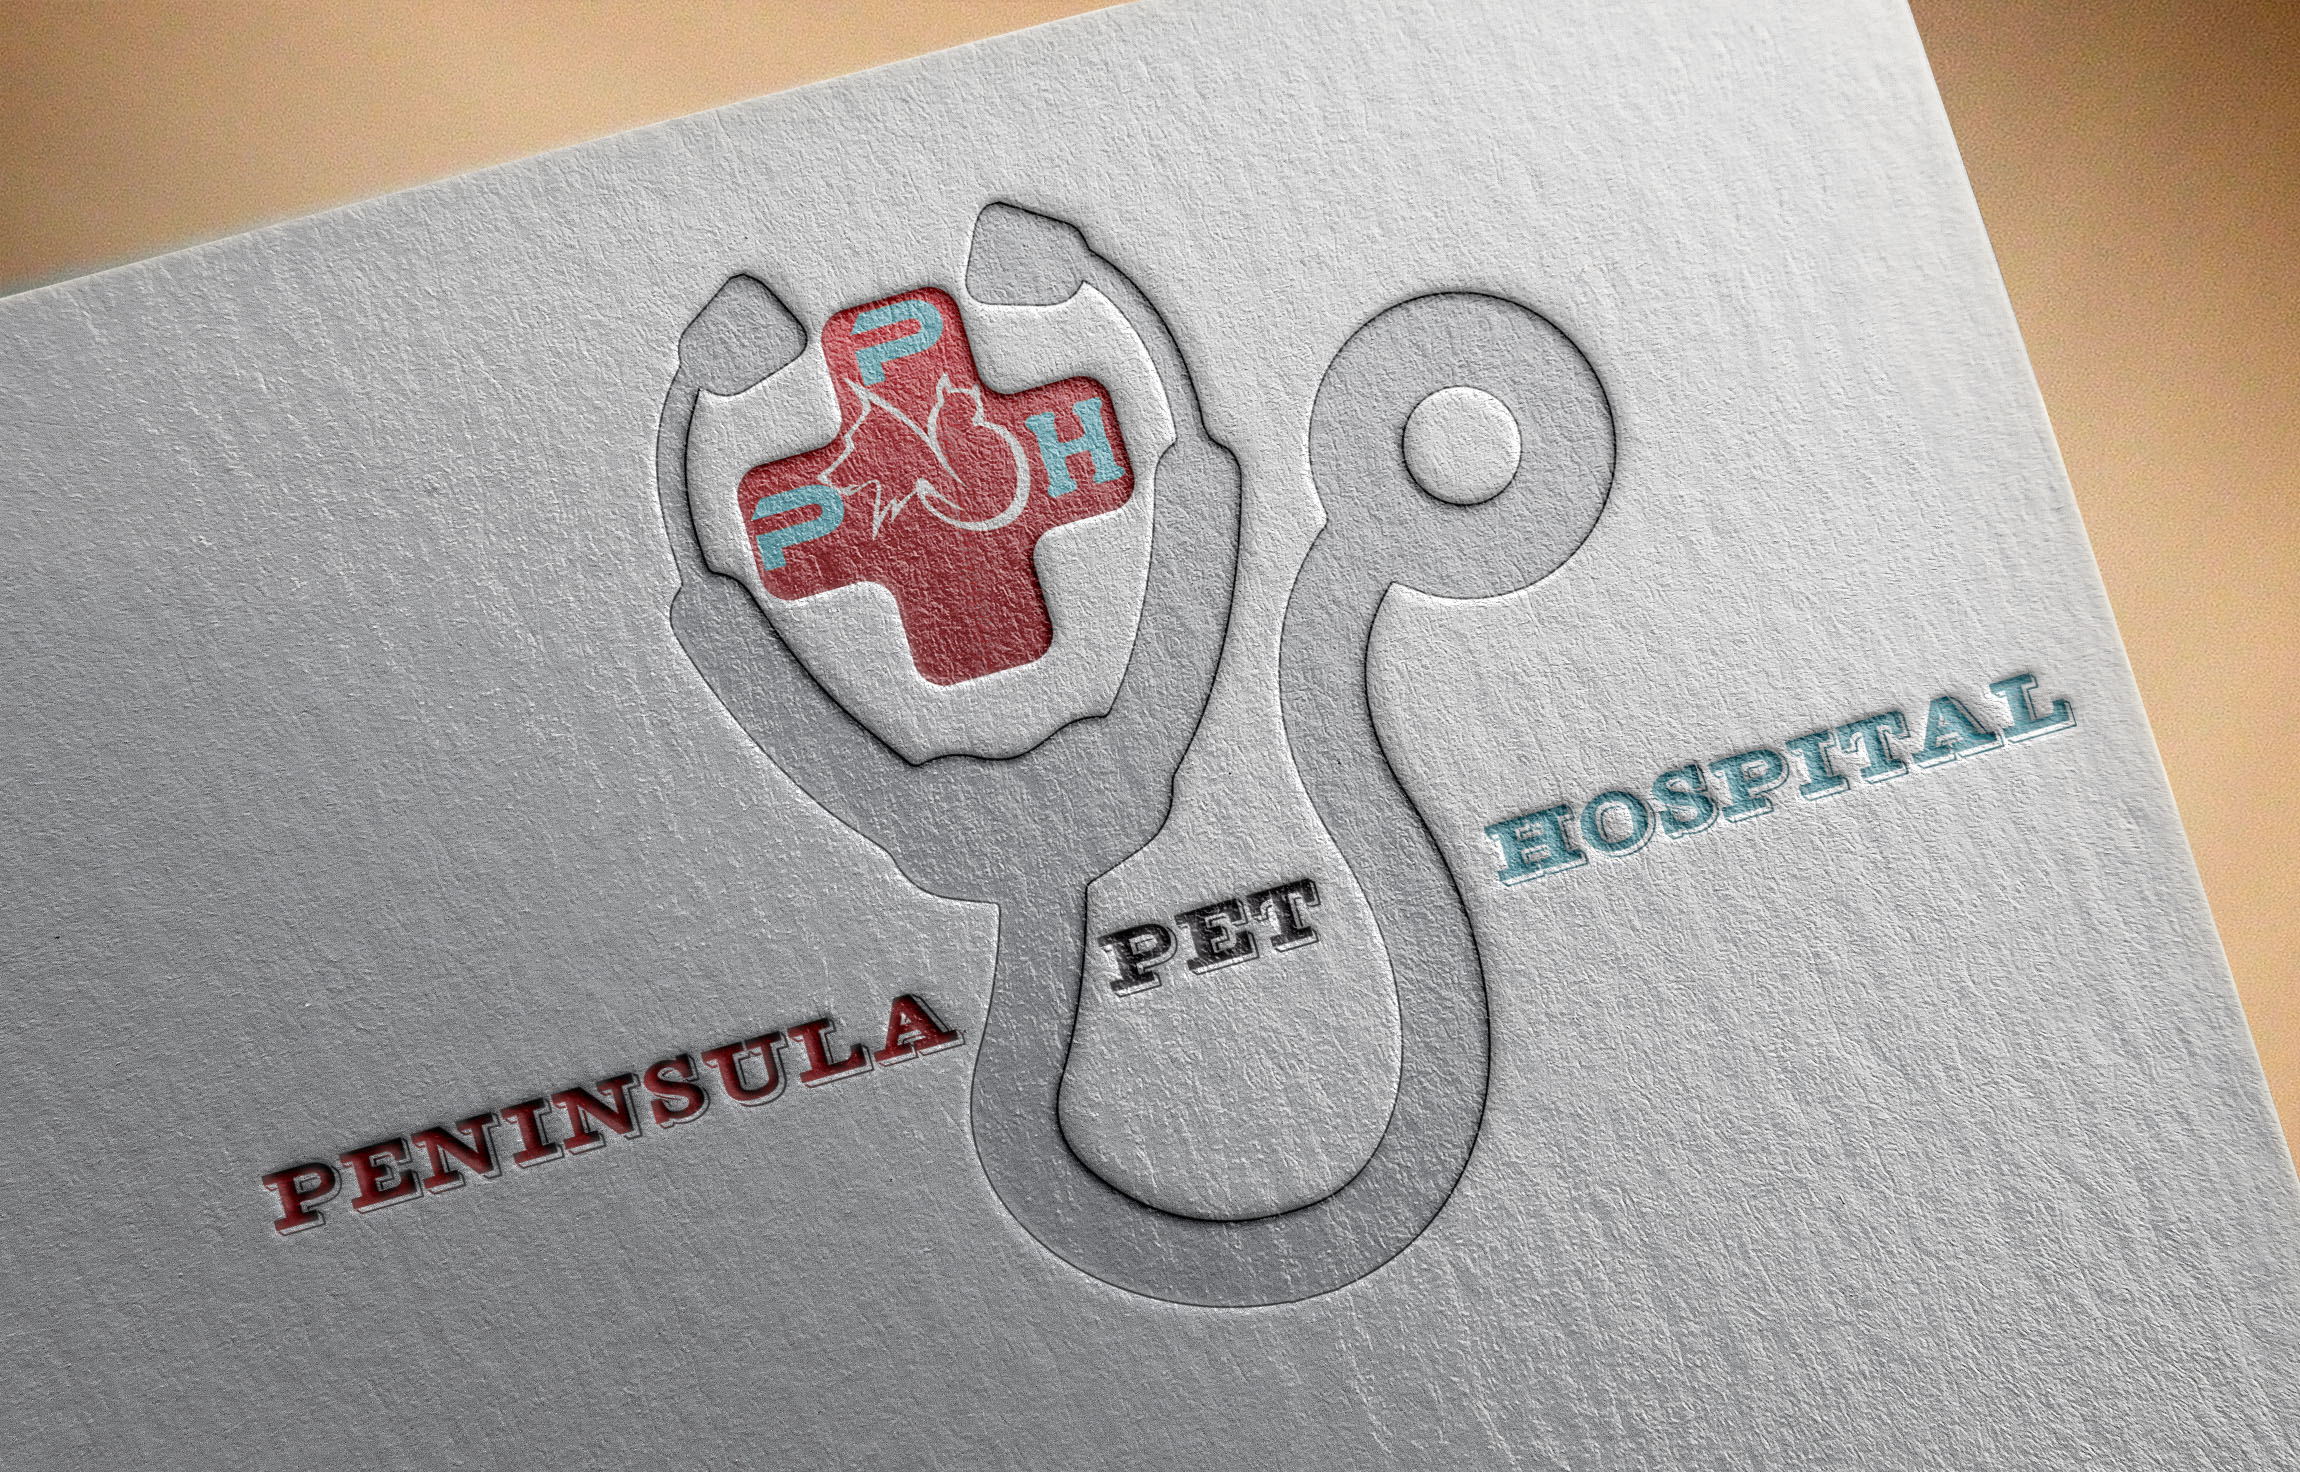 Logo Design by Umair ahmed Iqbal - Entry No. 49 in the Logo Design Contest Creative Logo Design for Peninsula Pet Hospital.